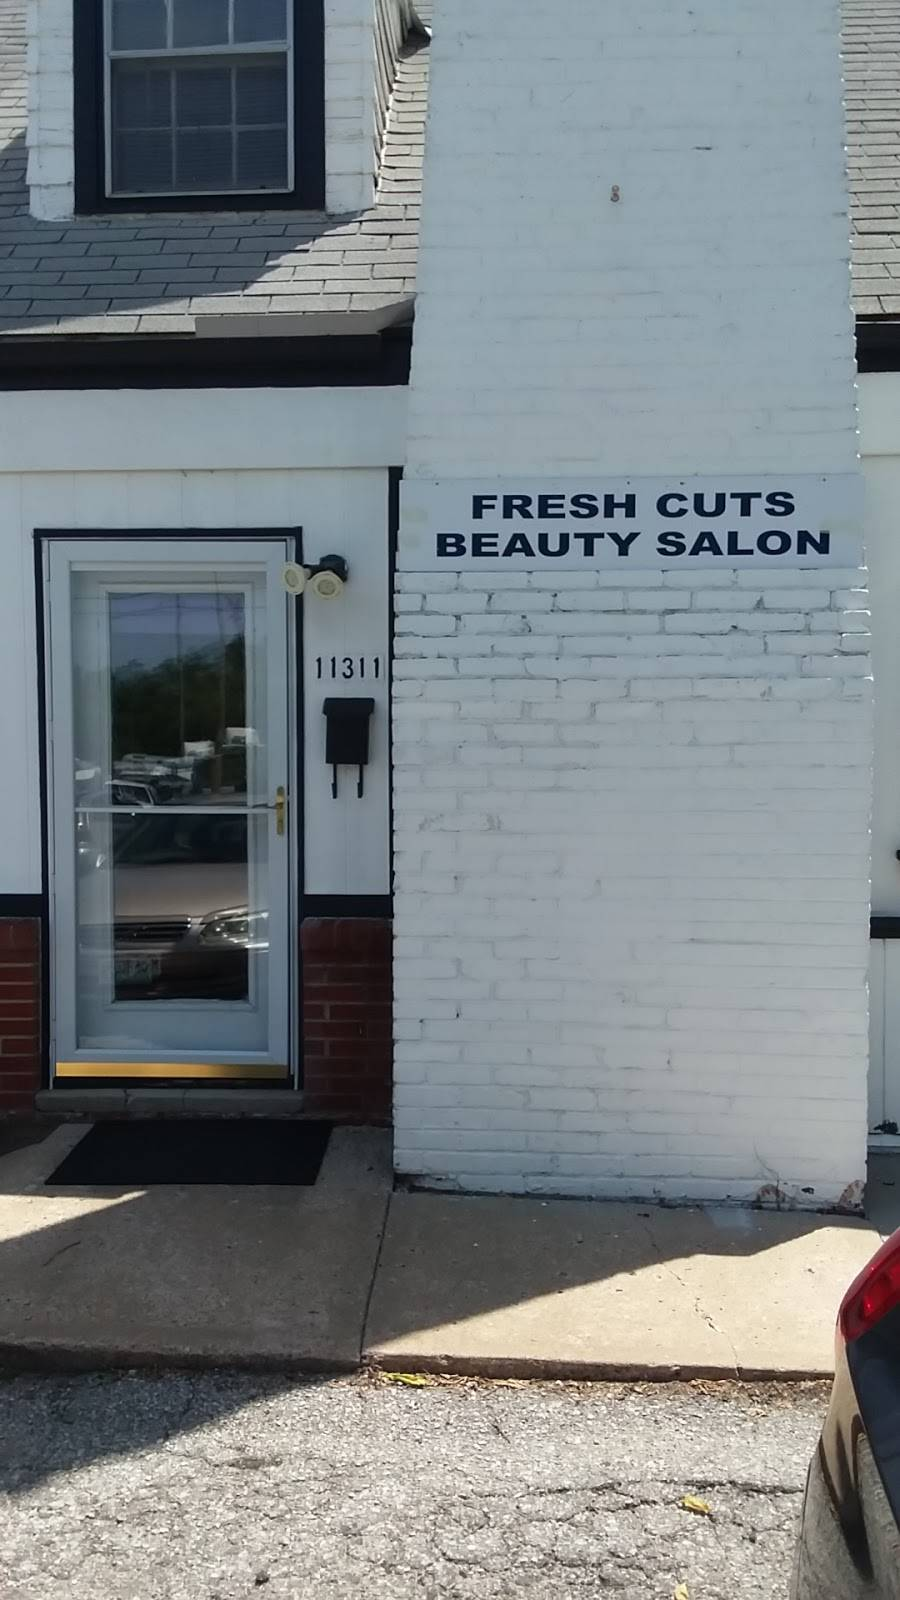 Fresh Cuts Beauty Salon - hair care  | Photo 2 of 2 | Address: 11311 Hickman Mills Dr, Kansas City, MO 64134, USA | Phone: (816) 589-4987